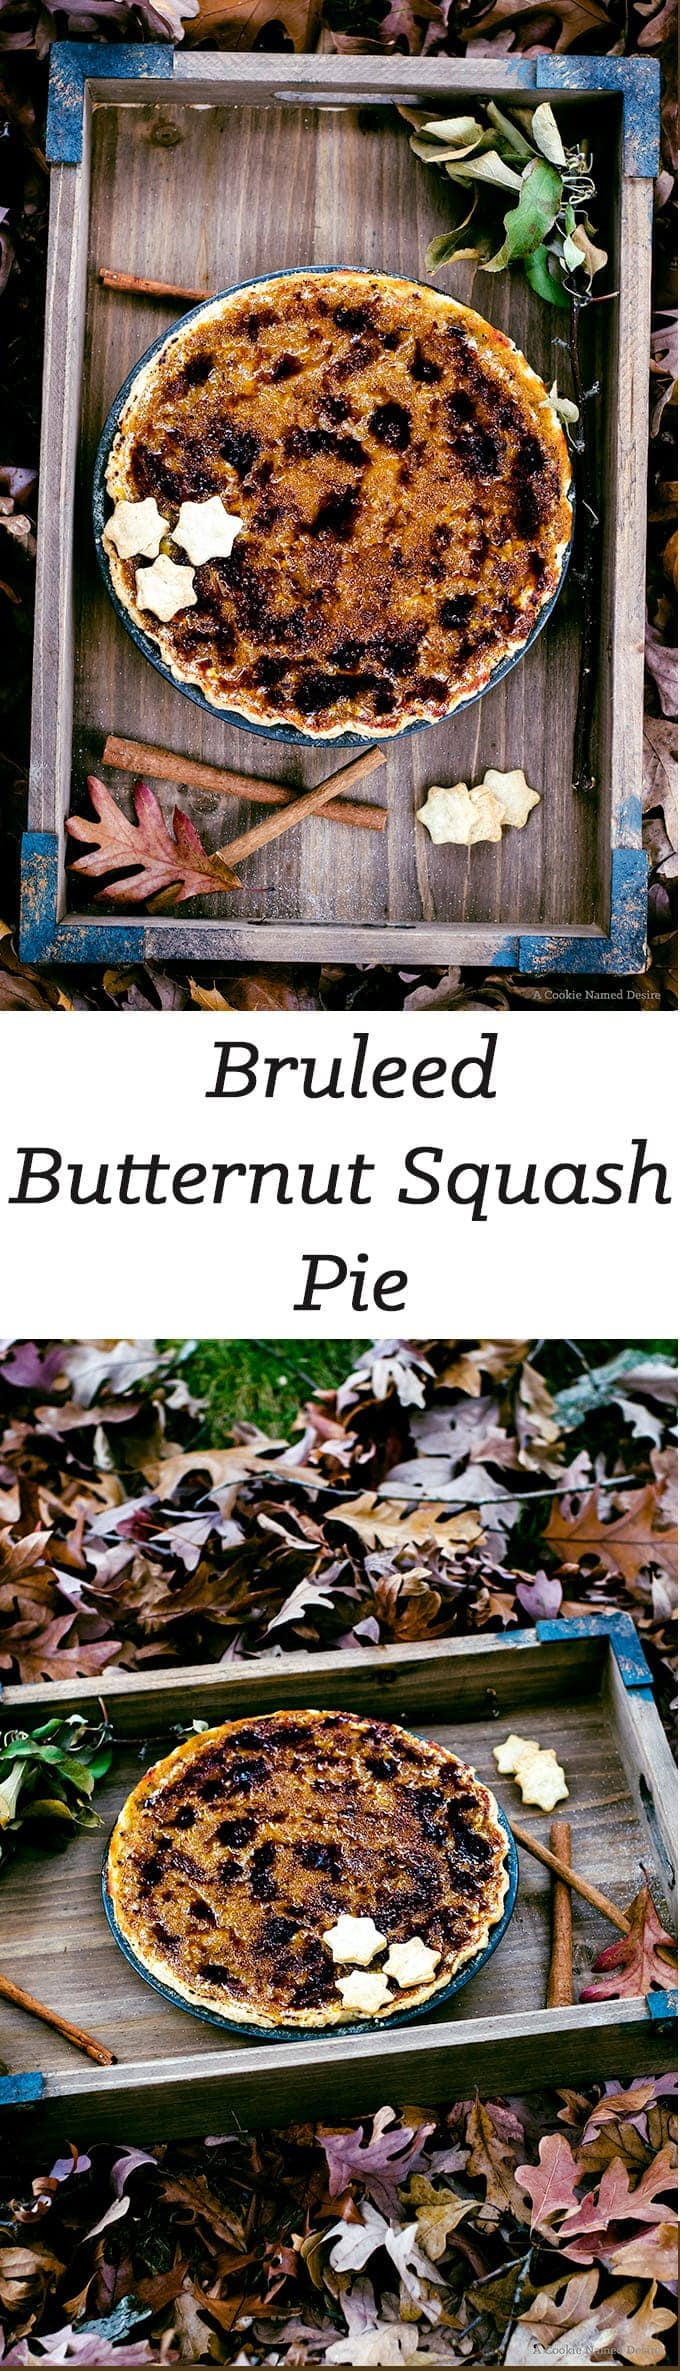 You are going to fall in love with this bruleed buternut squash pie with brown butter bourbon pie crust.